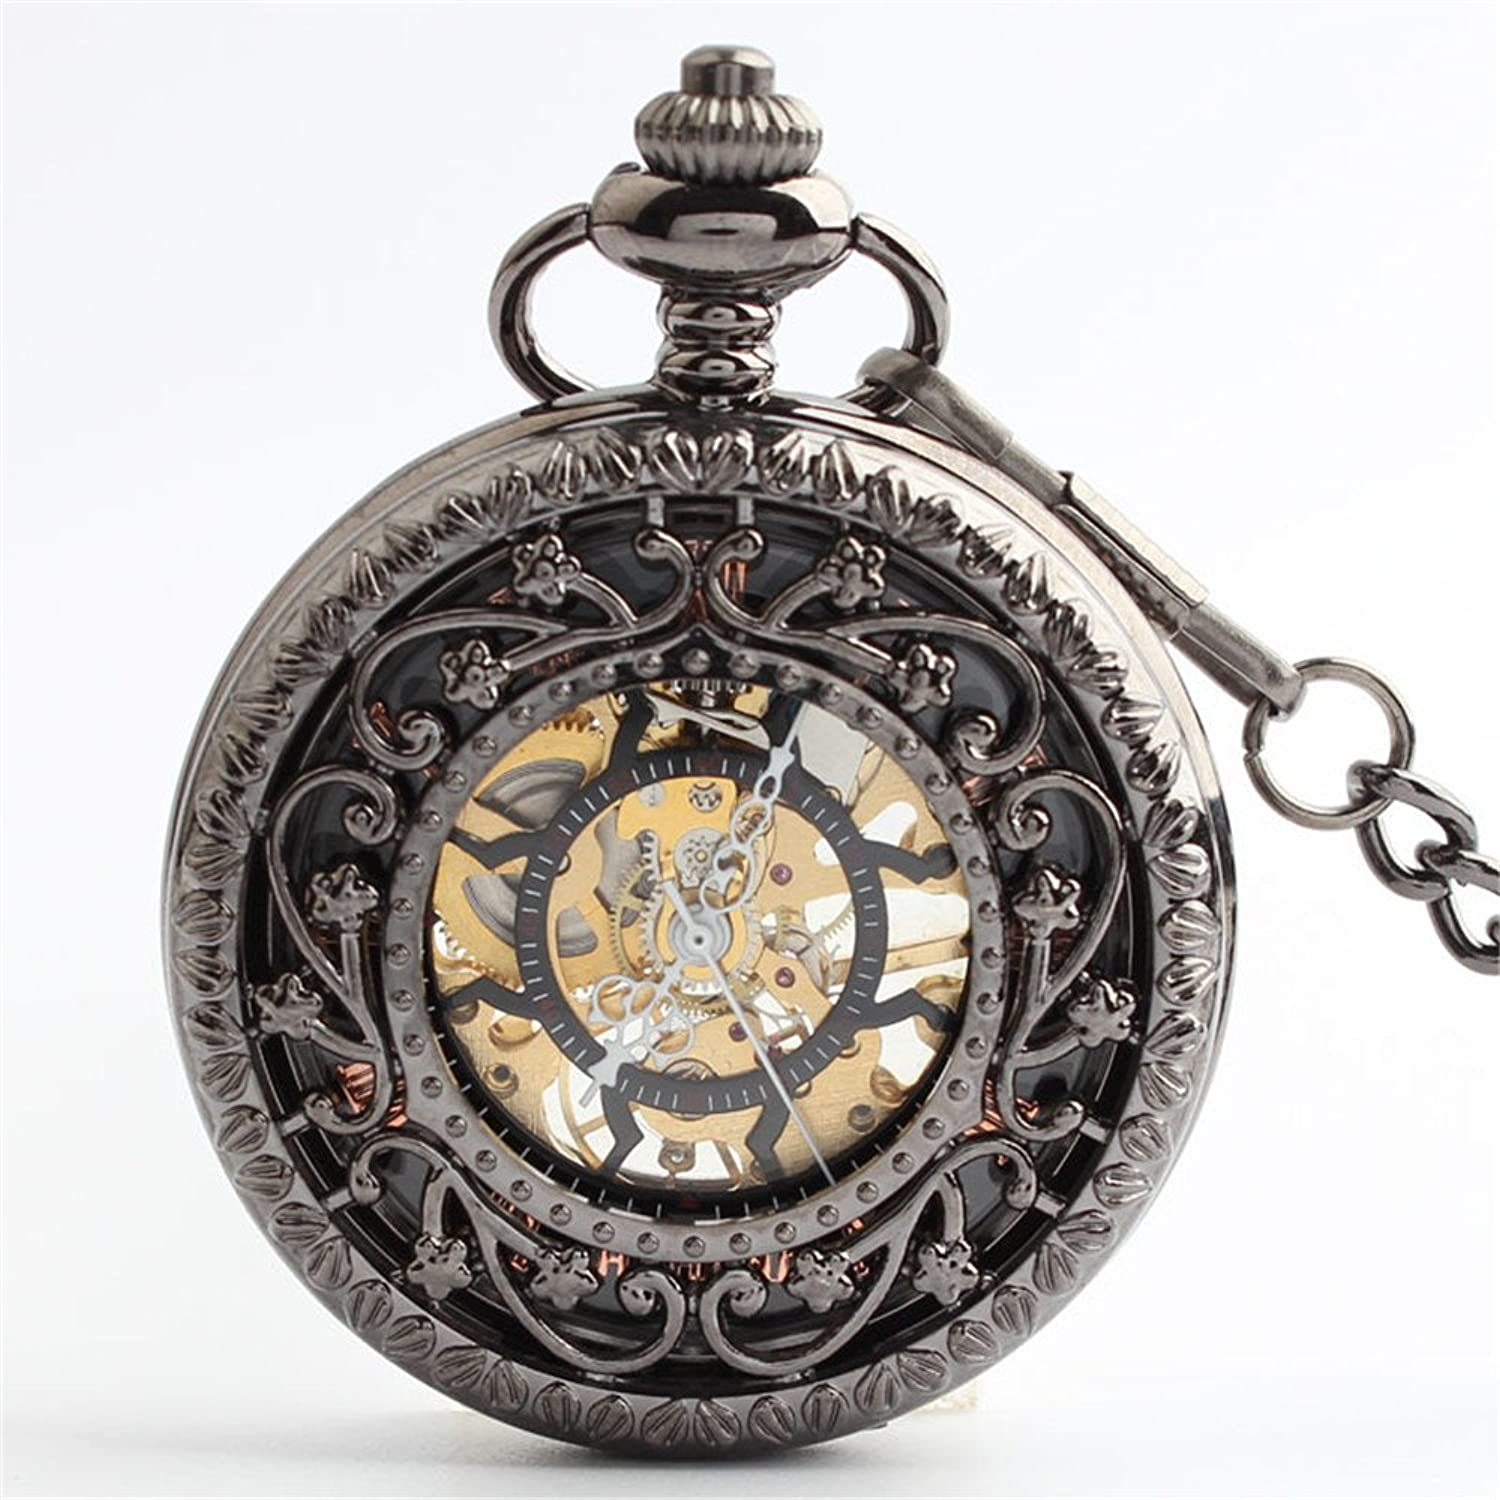 Pocket Watch Exquisite Carved Retro Pocket Watch Boutique Hollow Mechanical Pocket Watch with Metal Chain